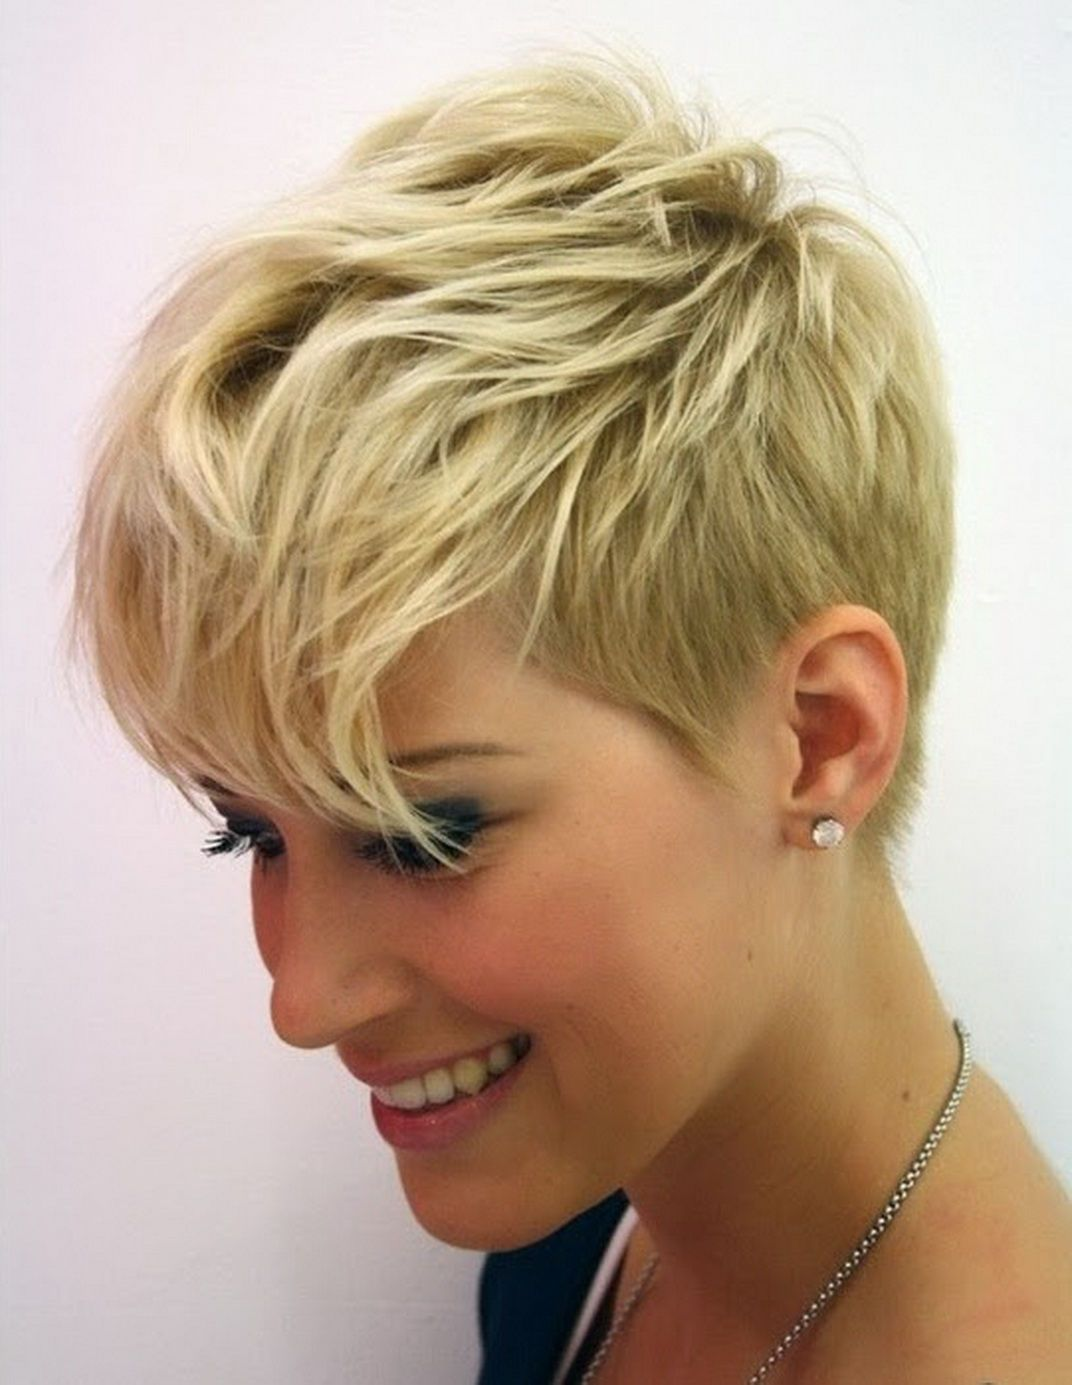 25 Short Hairstyles For Heart Shaped Faces Short Thin Hair Very